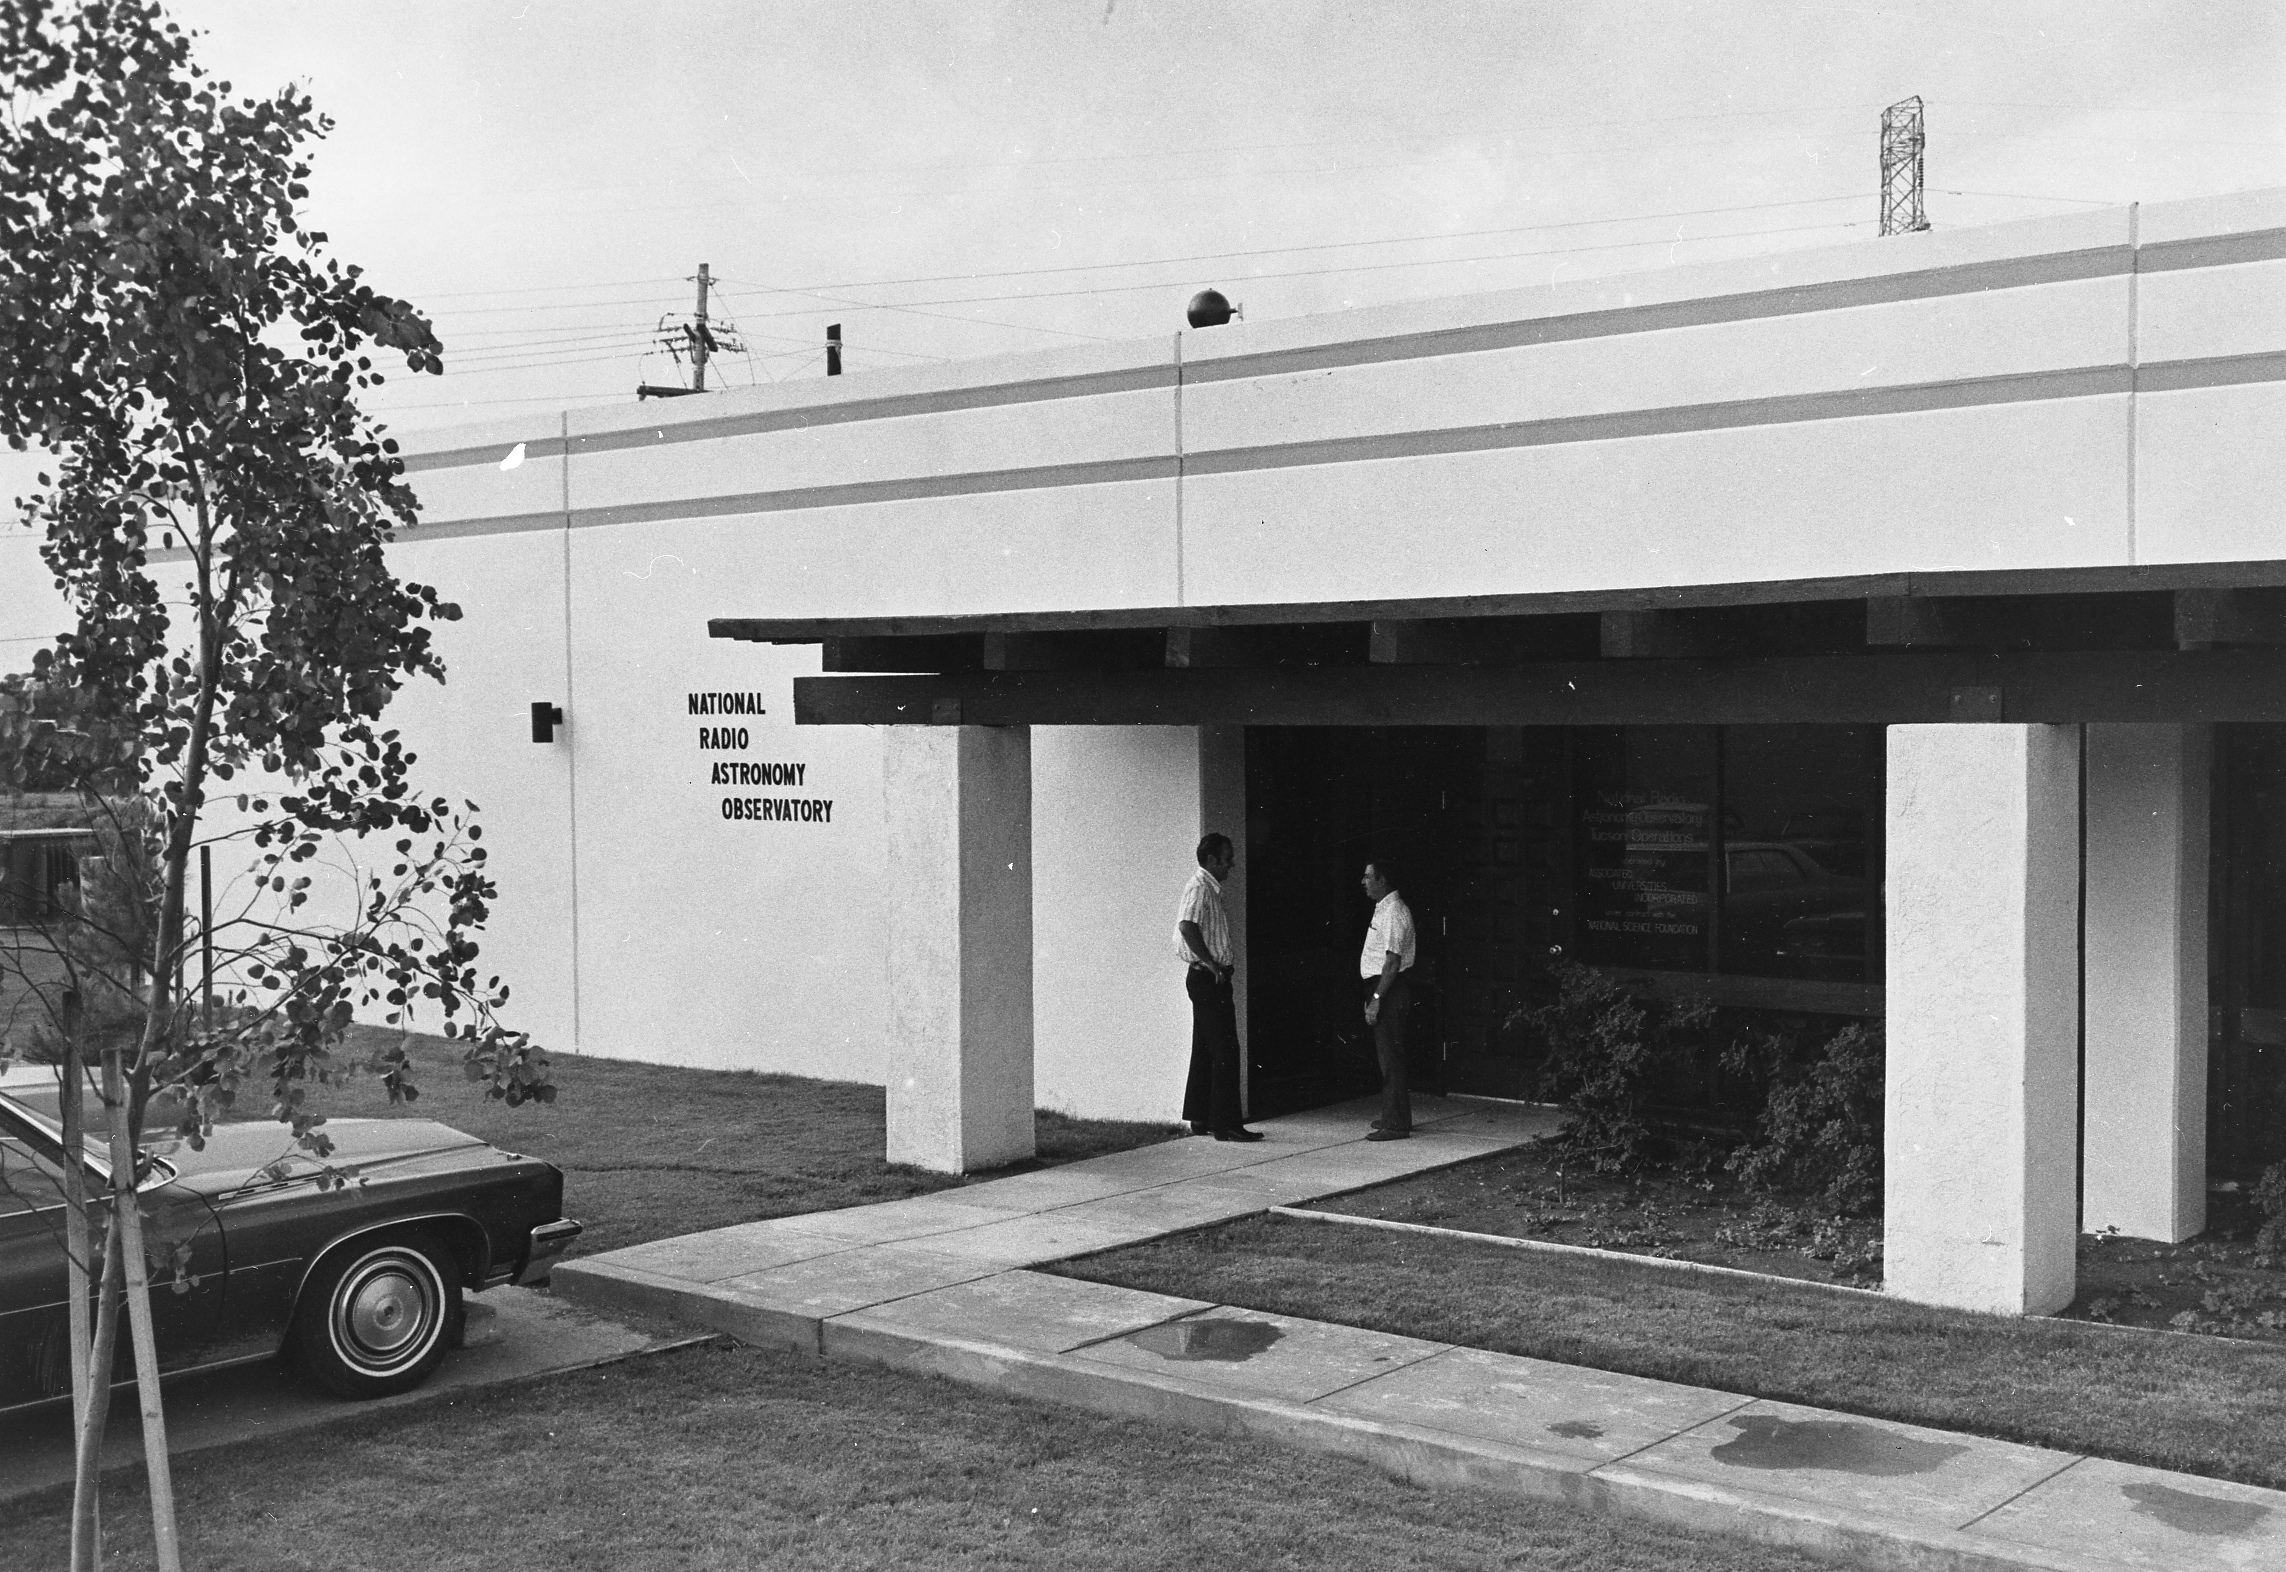 Tucson Offices on Forbes Blvd., October 1974